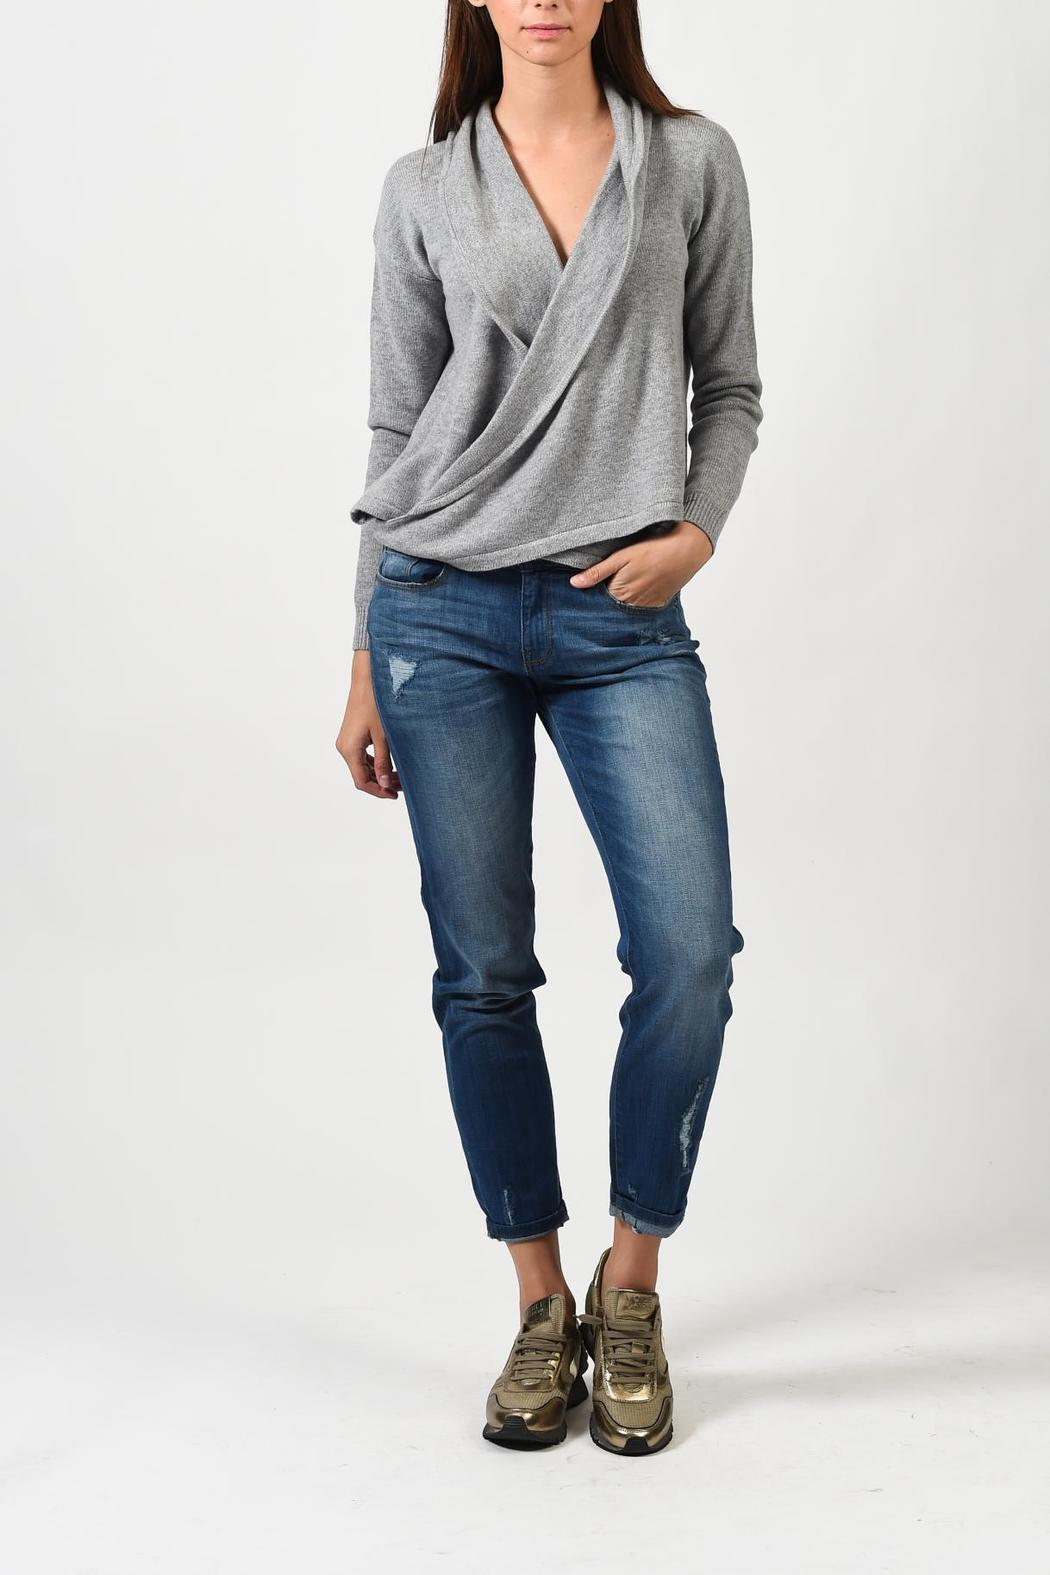 One Grey Day Bryan Sweater - Front Cropped Image